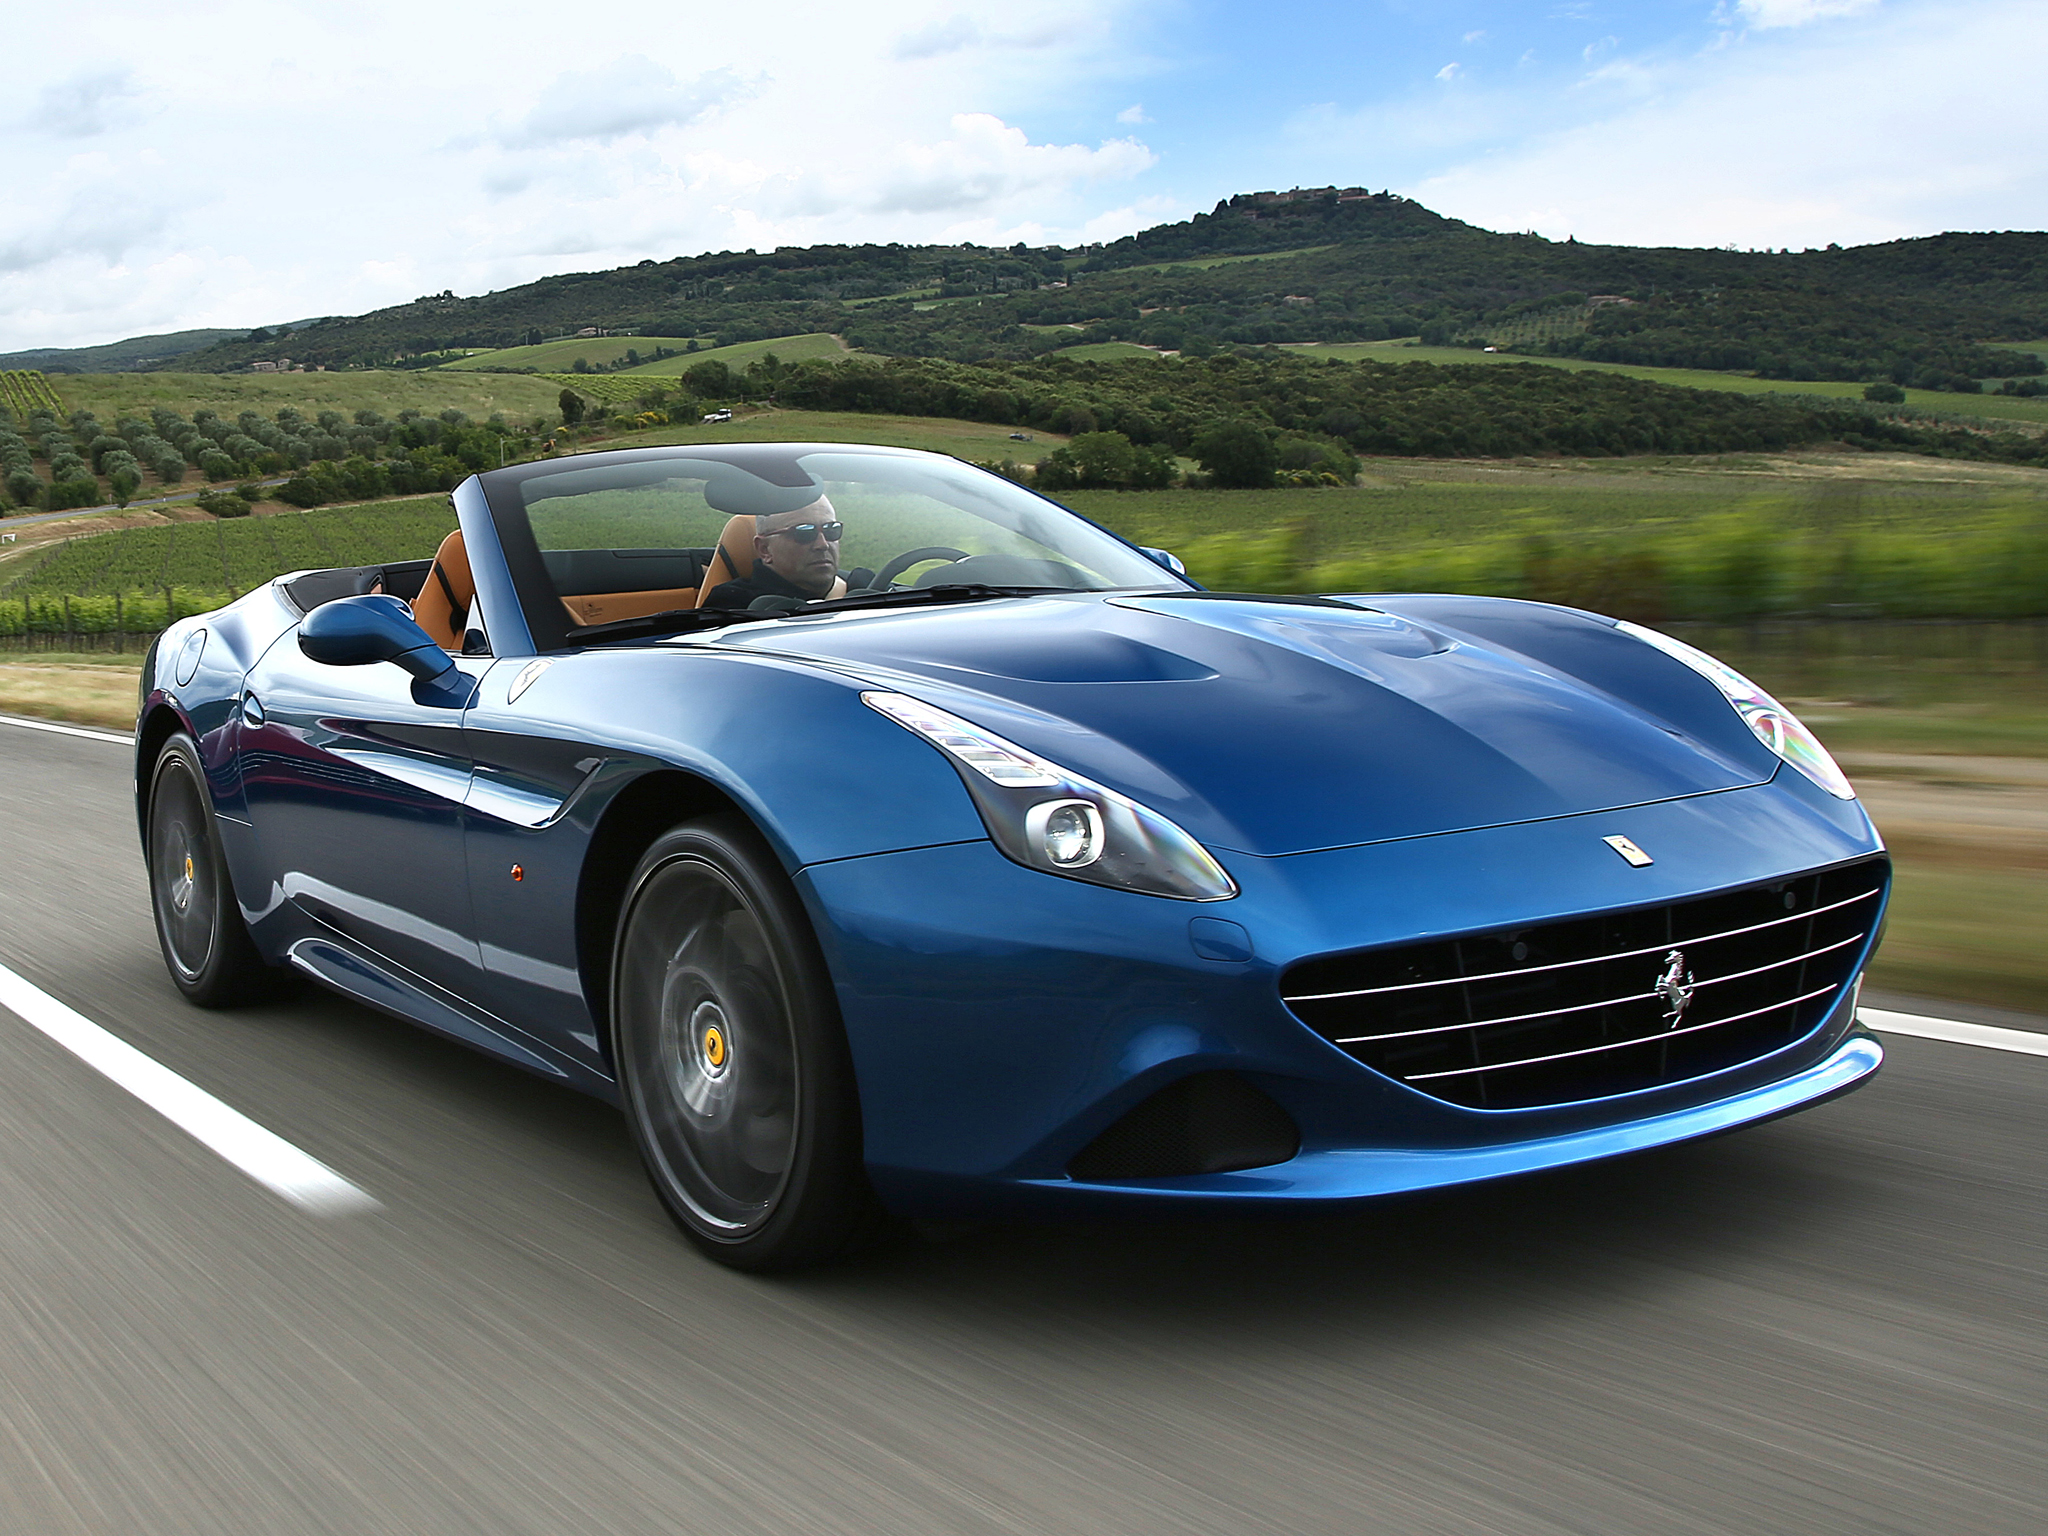 ferrari california t 2014 2015 2016 2017 autoevolution. Black Bedroom Furniture Sets. Home Design Ideas